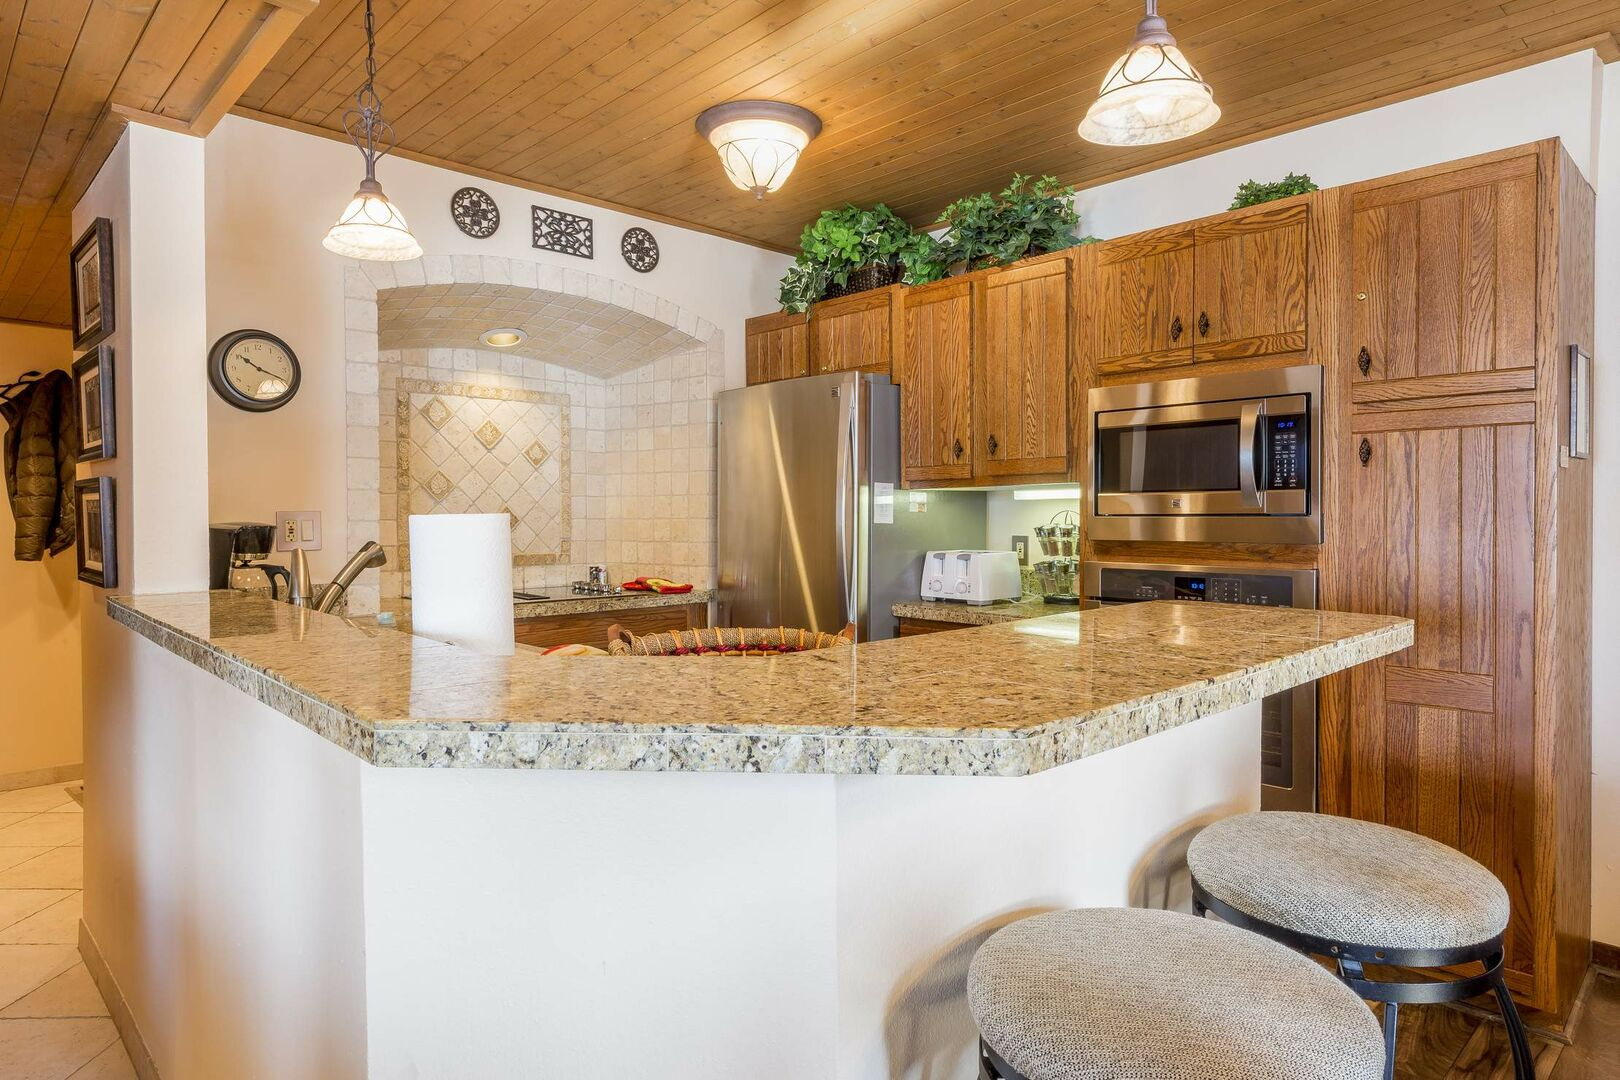 Well equipped kitchen with wood cabinets and stainless steel appliances